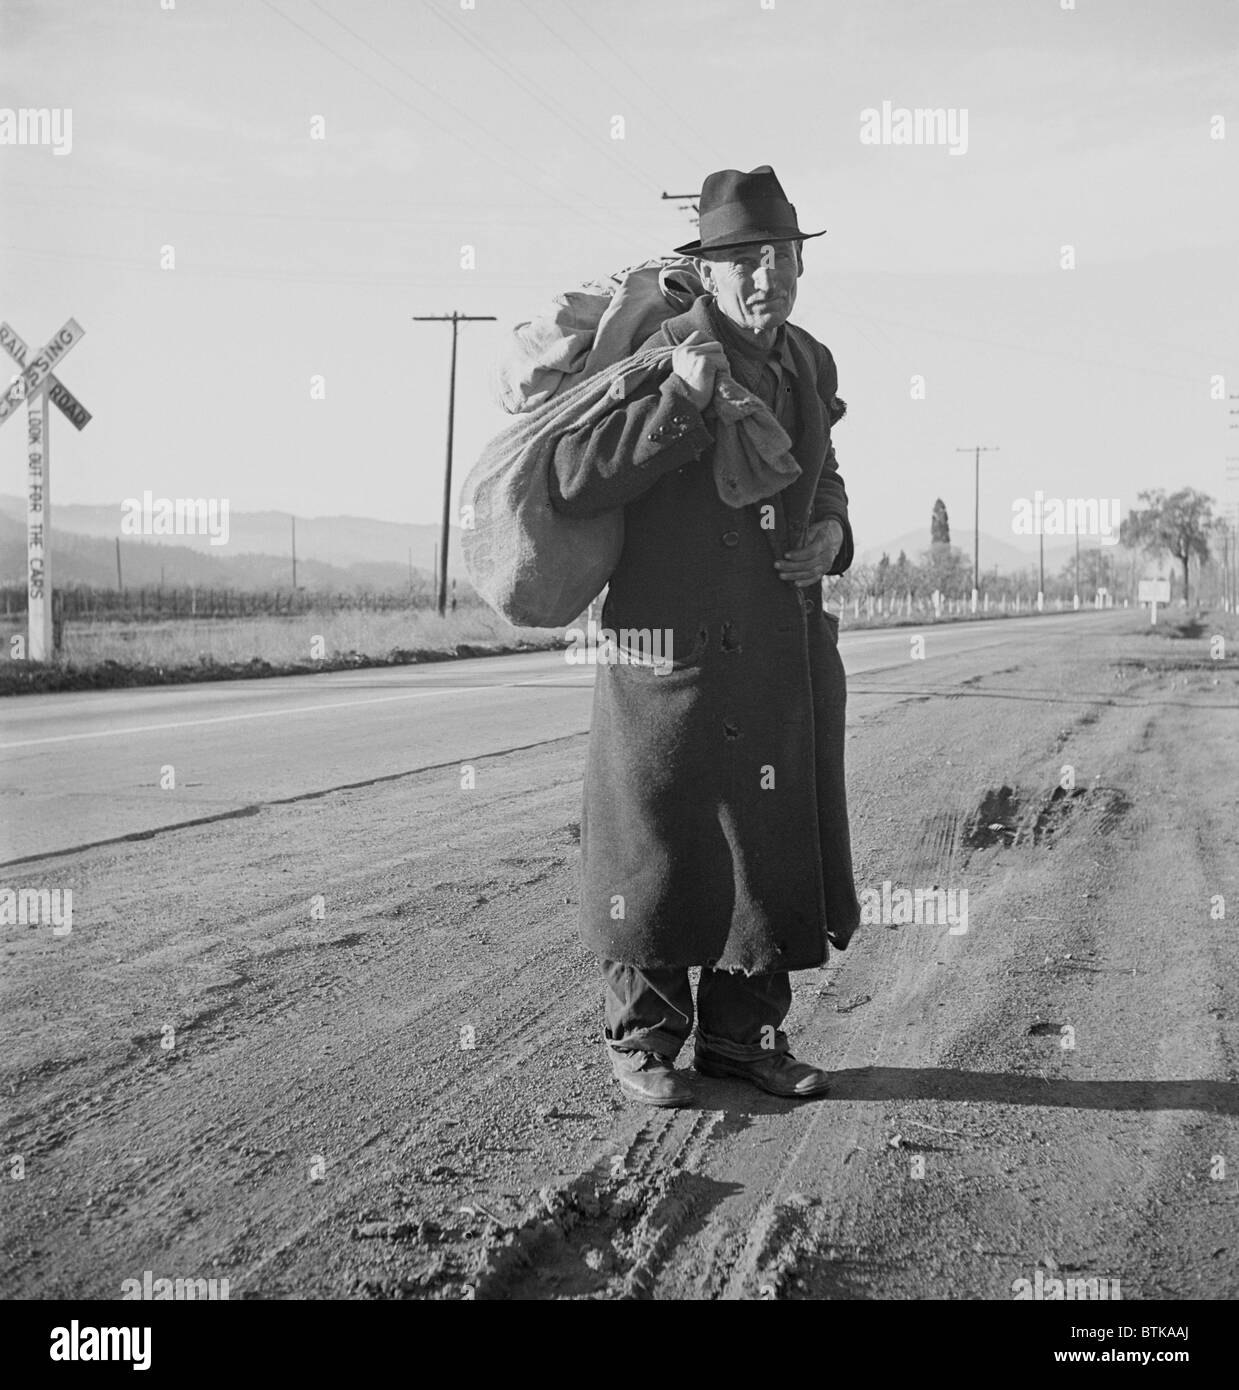 The Great Depression. Itinerant worker, traveling by foot, looking for work in mines, lumber camps, or farms. He - Stock Image